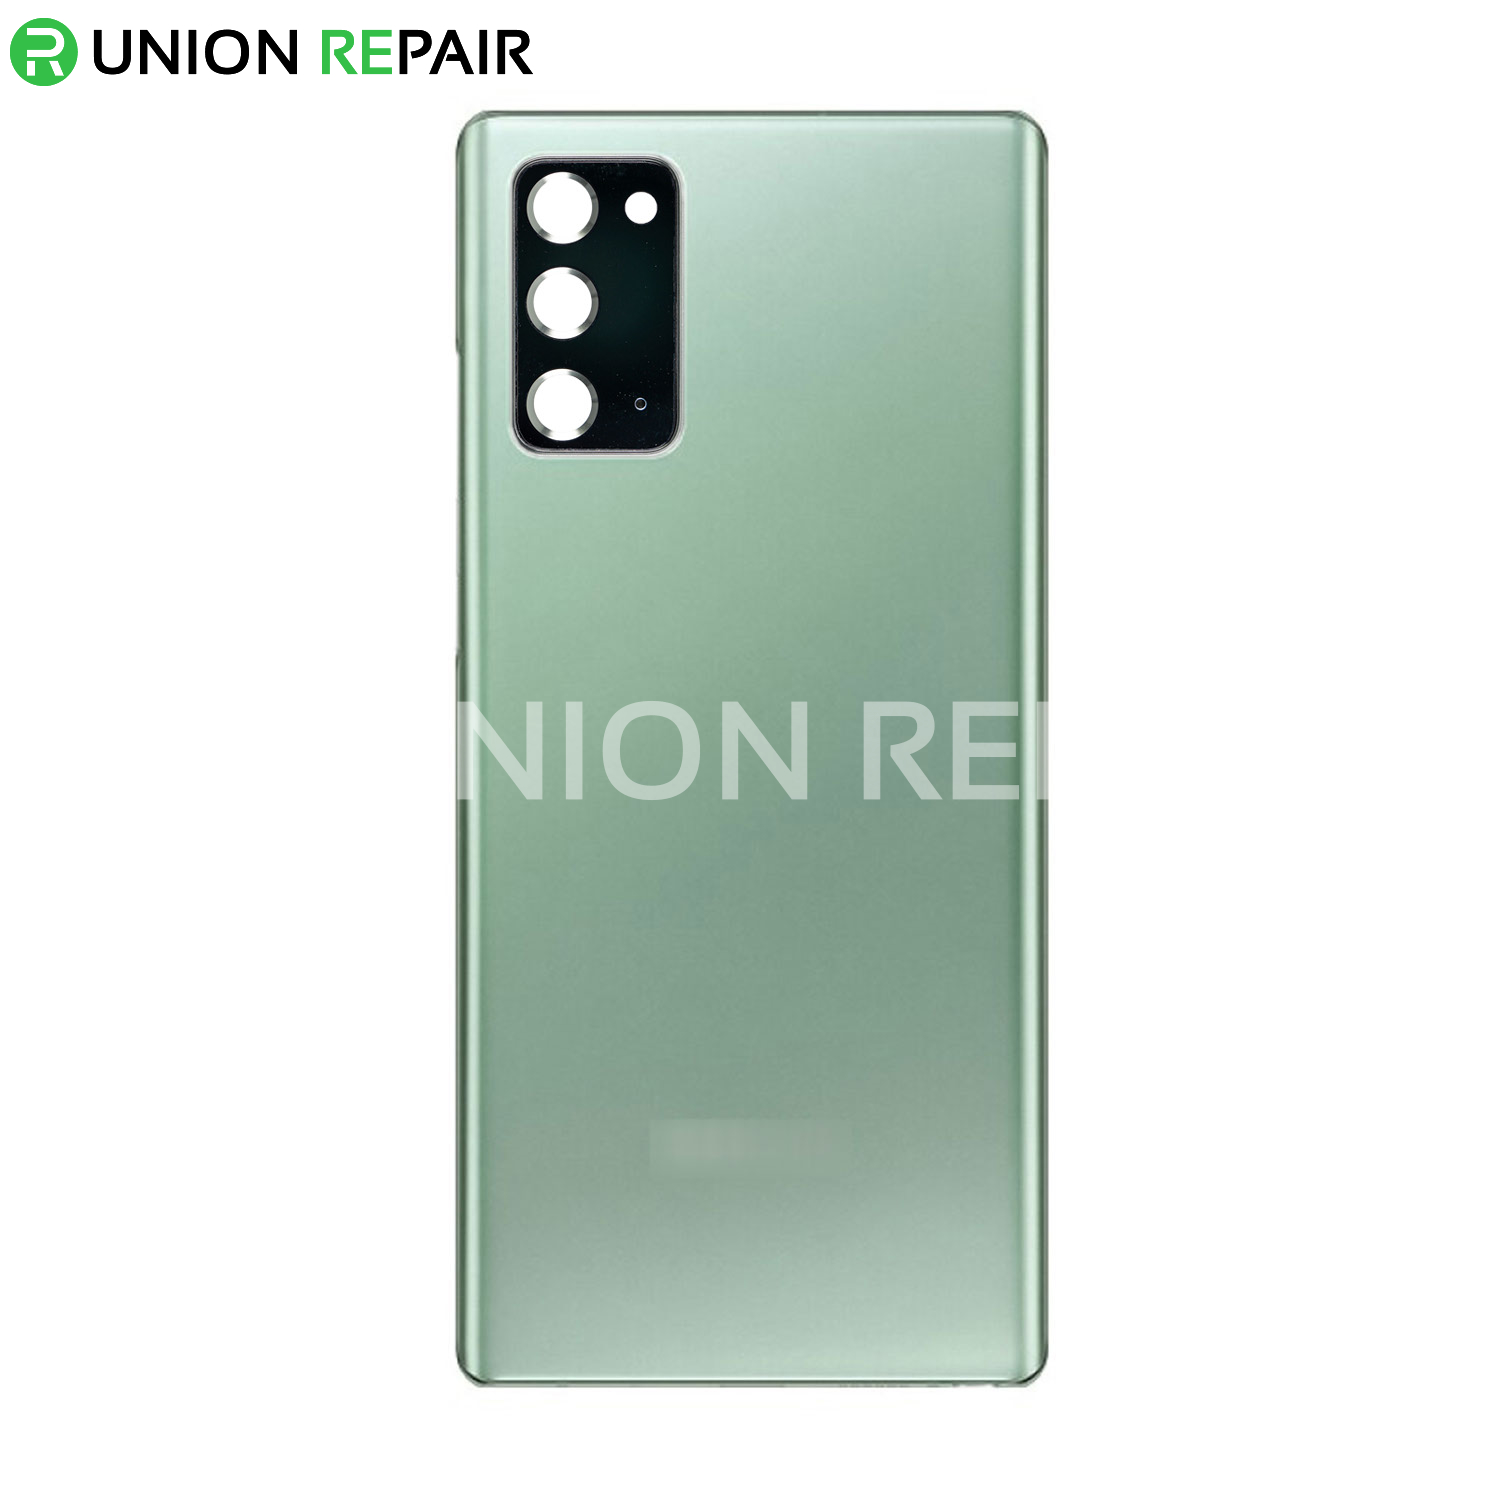 Replacement for Samsung Galaxy Note 20 Back Cover - Mystic Green